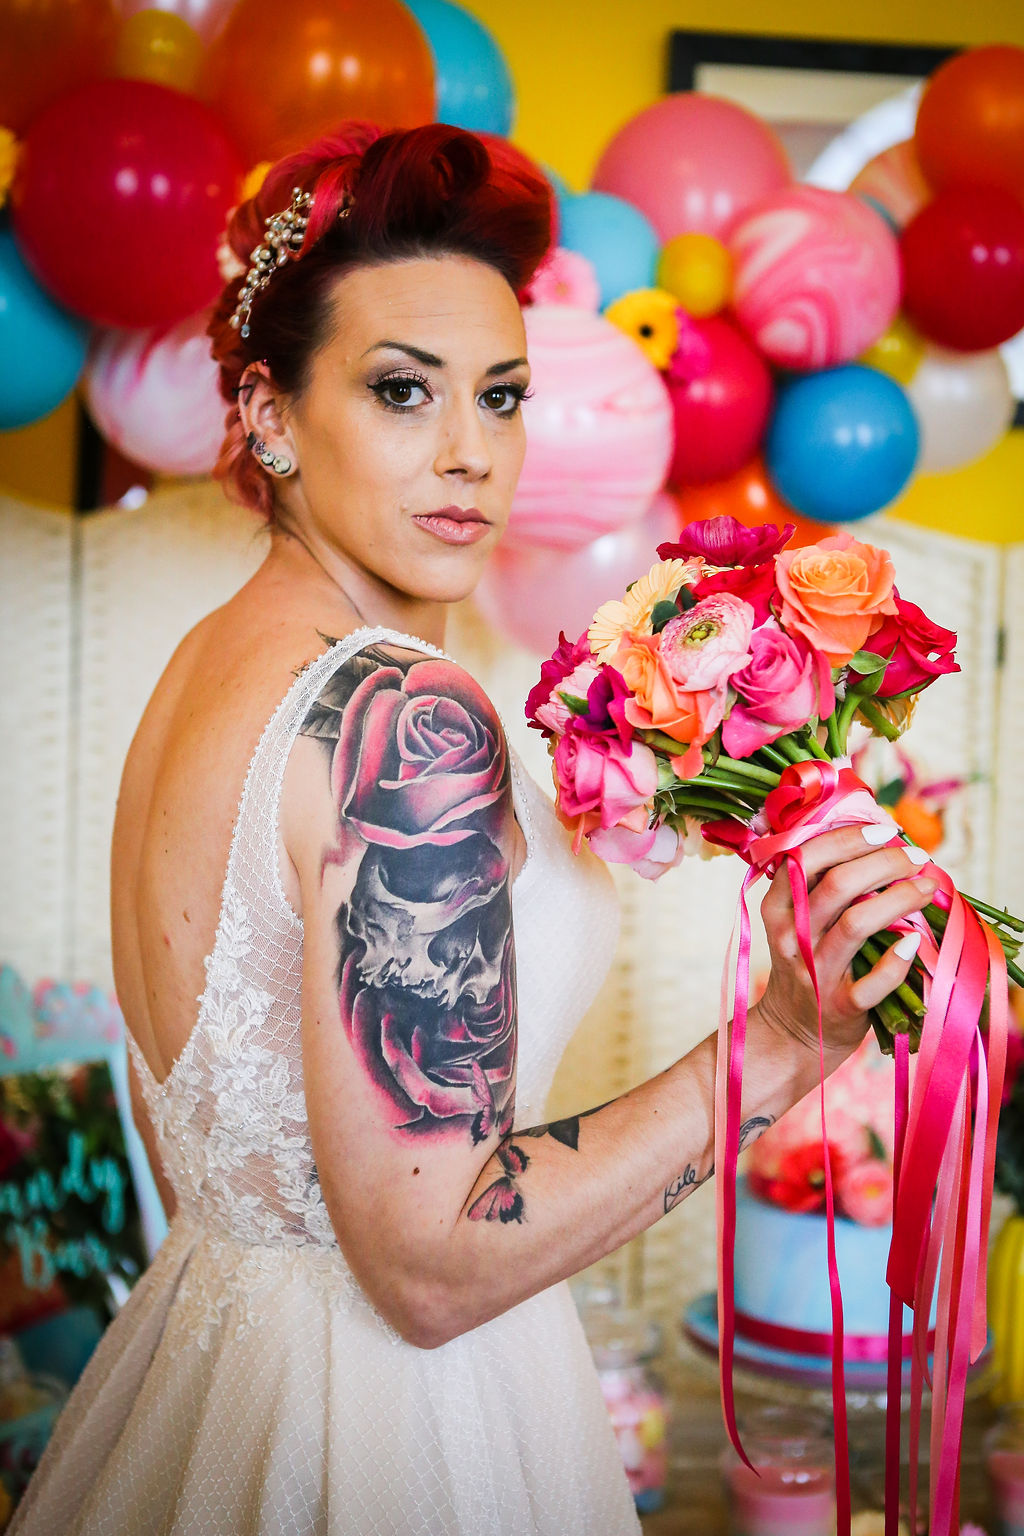 Rainbow Wedding Inspiration with Epic Balloon Trees and Hot Air Balloon